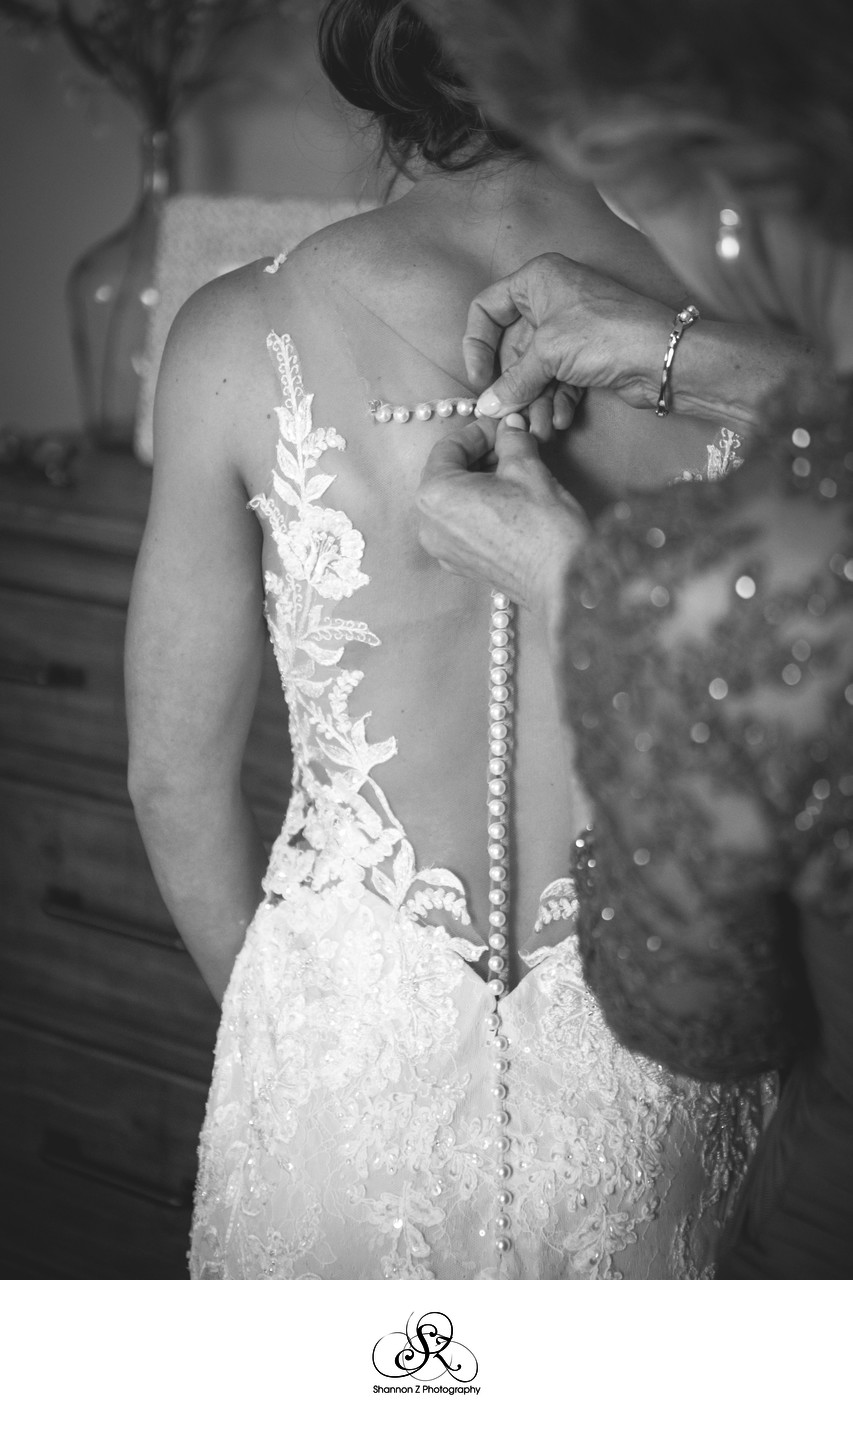 Getting Dressed: Bridal Portraits